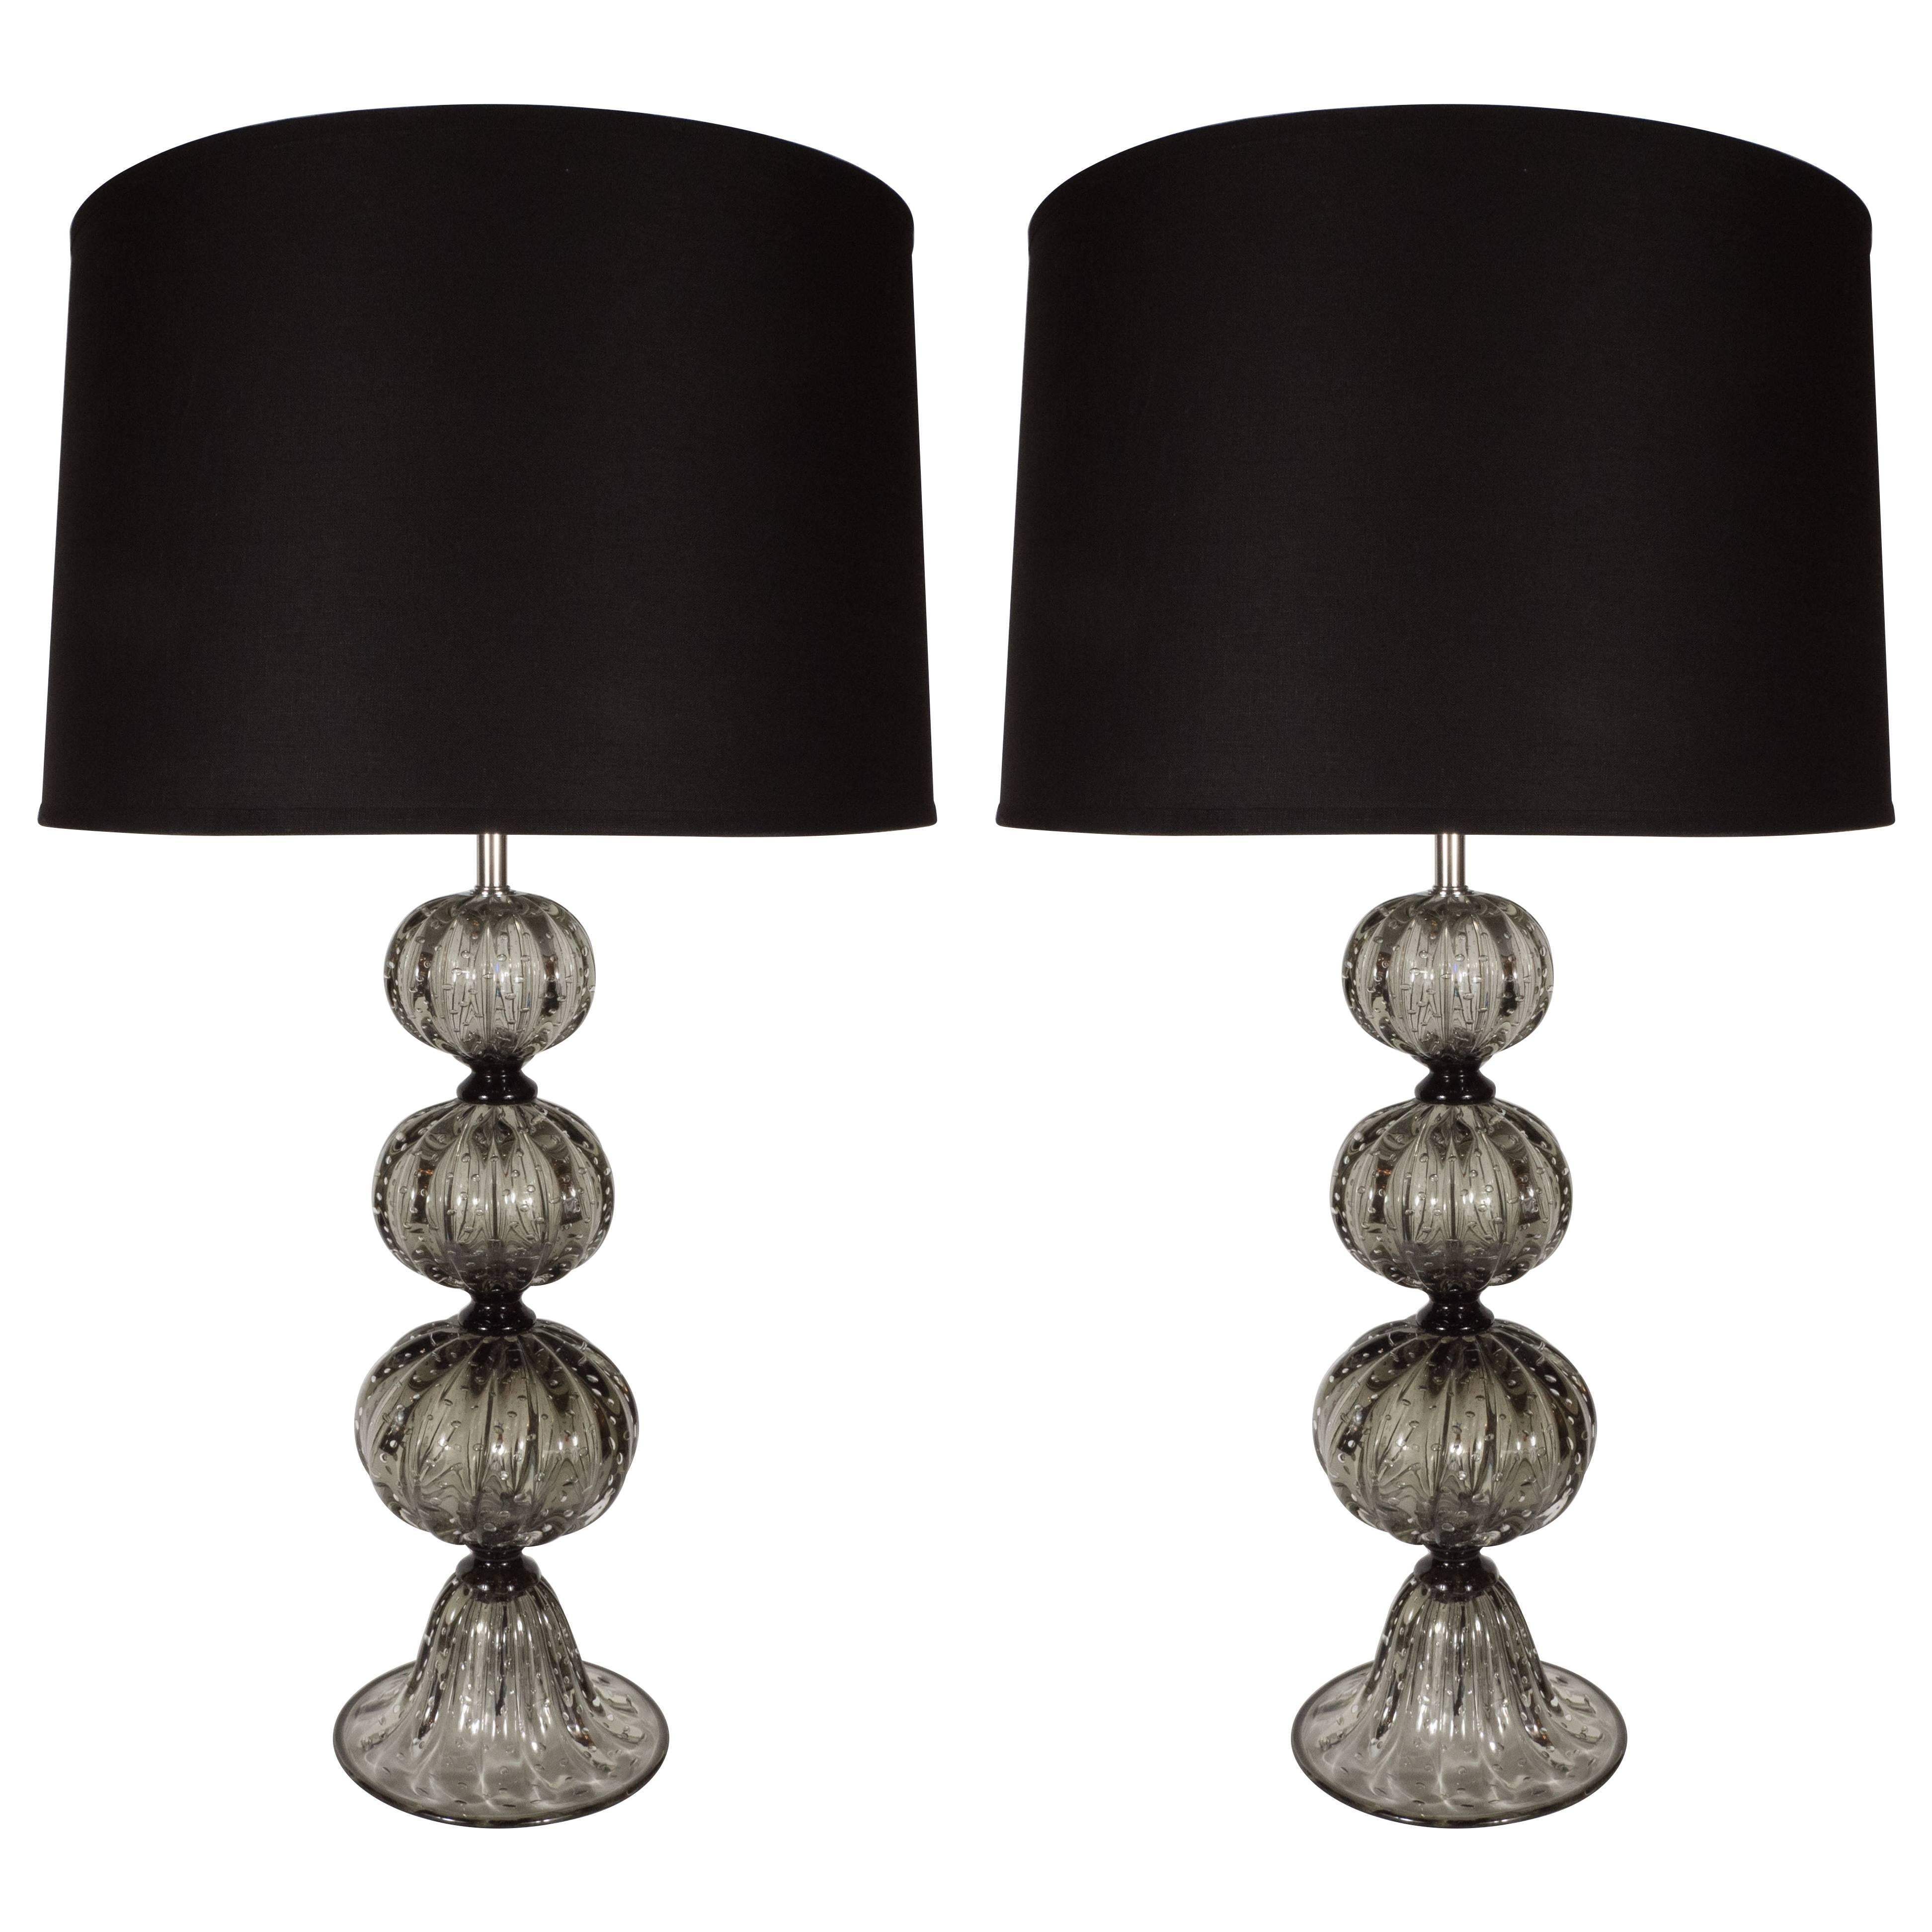 Pair of Handblown Smoked Pewter Murano Glass Table Lamps with Chrome Fittings